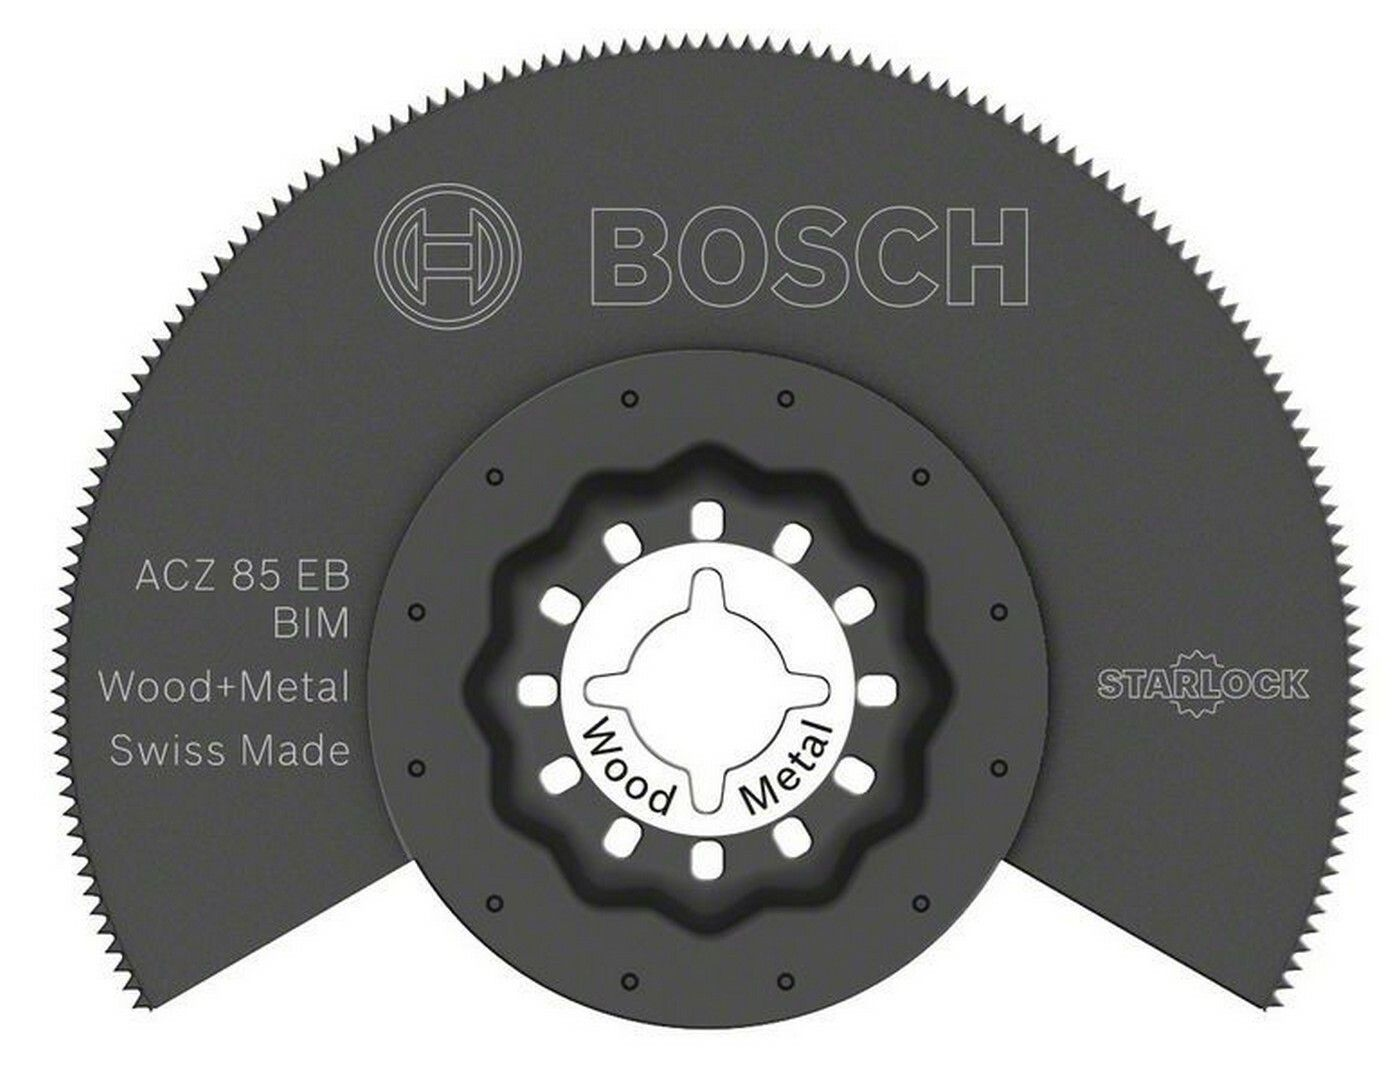 BIM segmentový pilový kotouč ACZ 85 EB Wood and Metal - 85 mm - 3165140492393 BOSCH